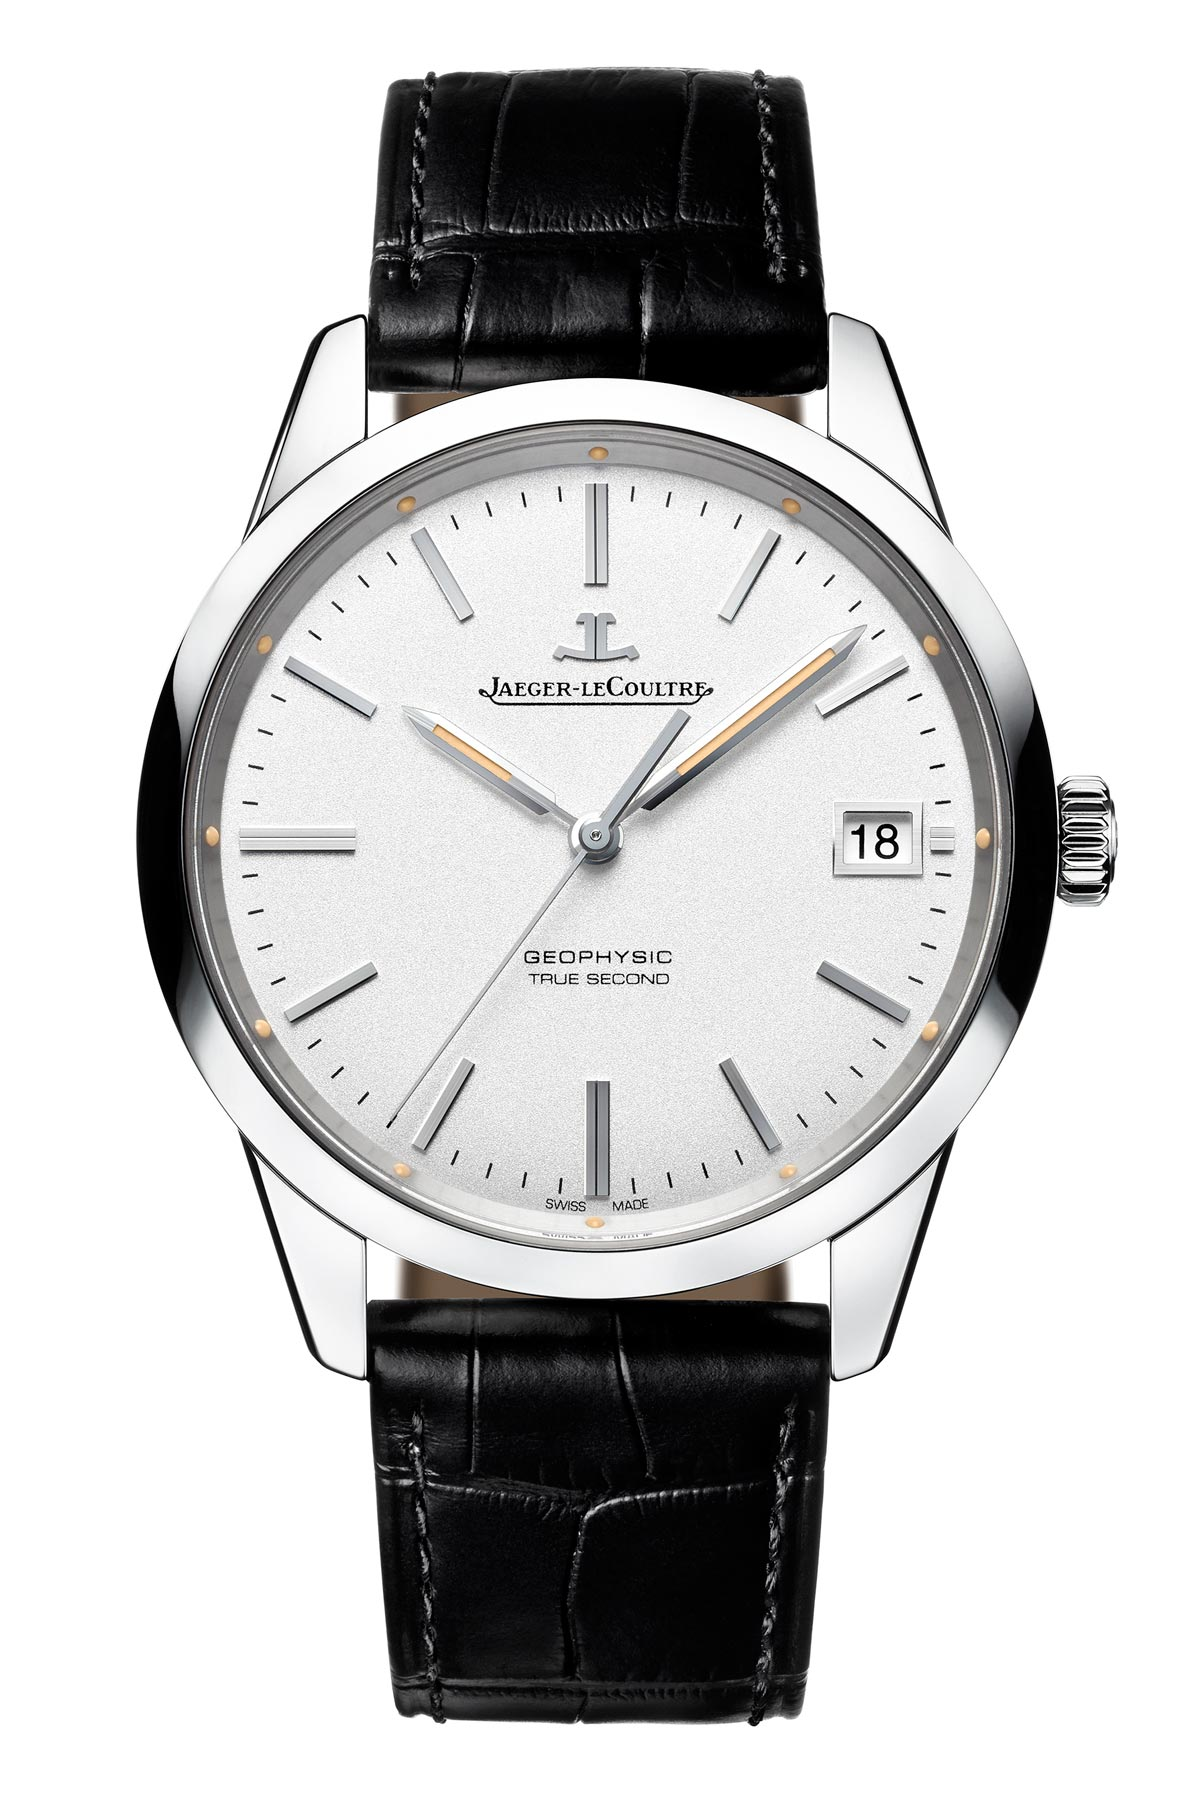 Jaeger-LeCoultre Geophysic True Second stainless steel full front